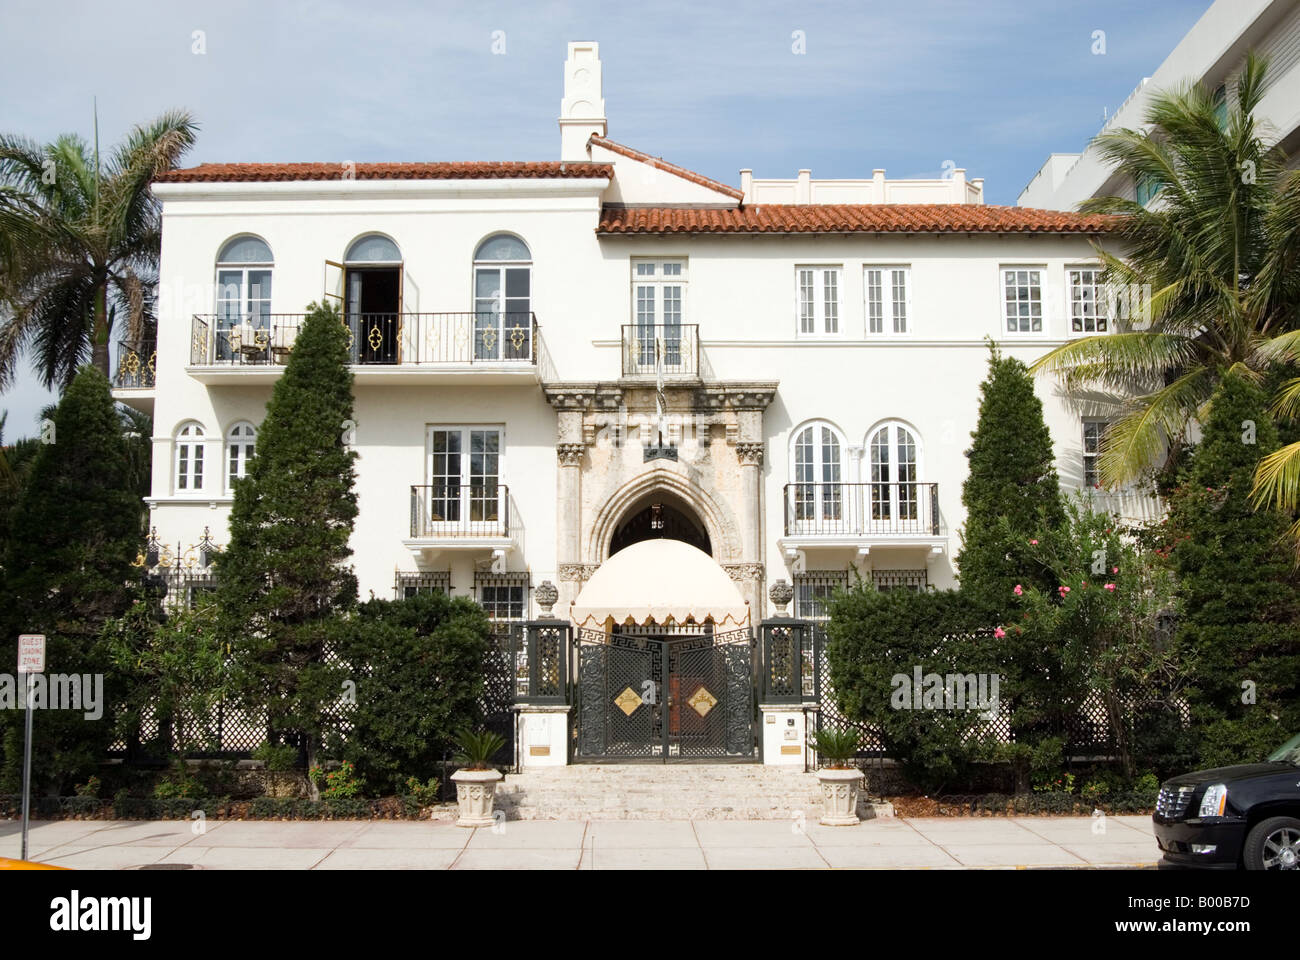 Casa Casuarina the former home of Gianni Versace on Ocean Drive is Stock Photo Royalty Free